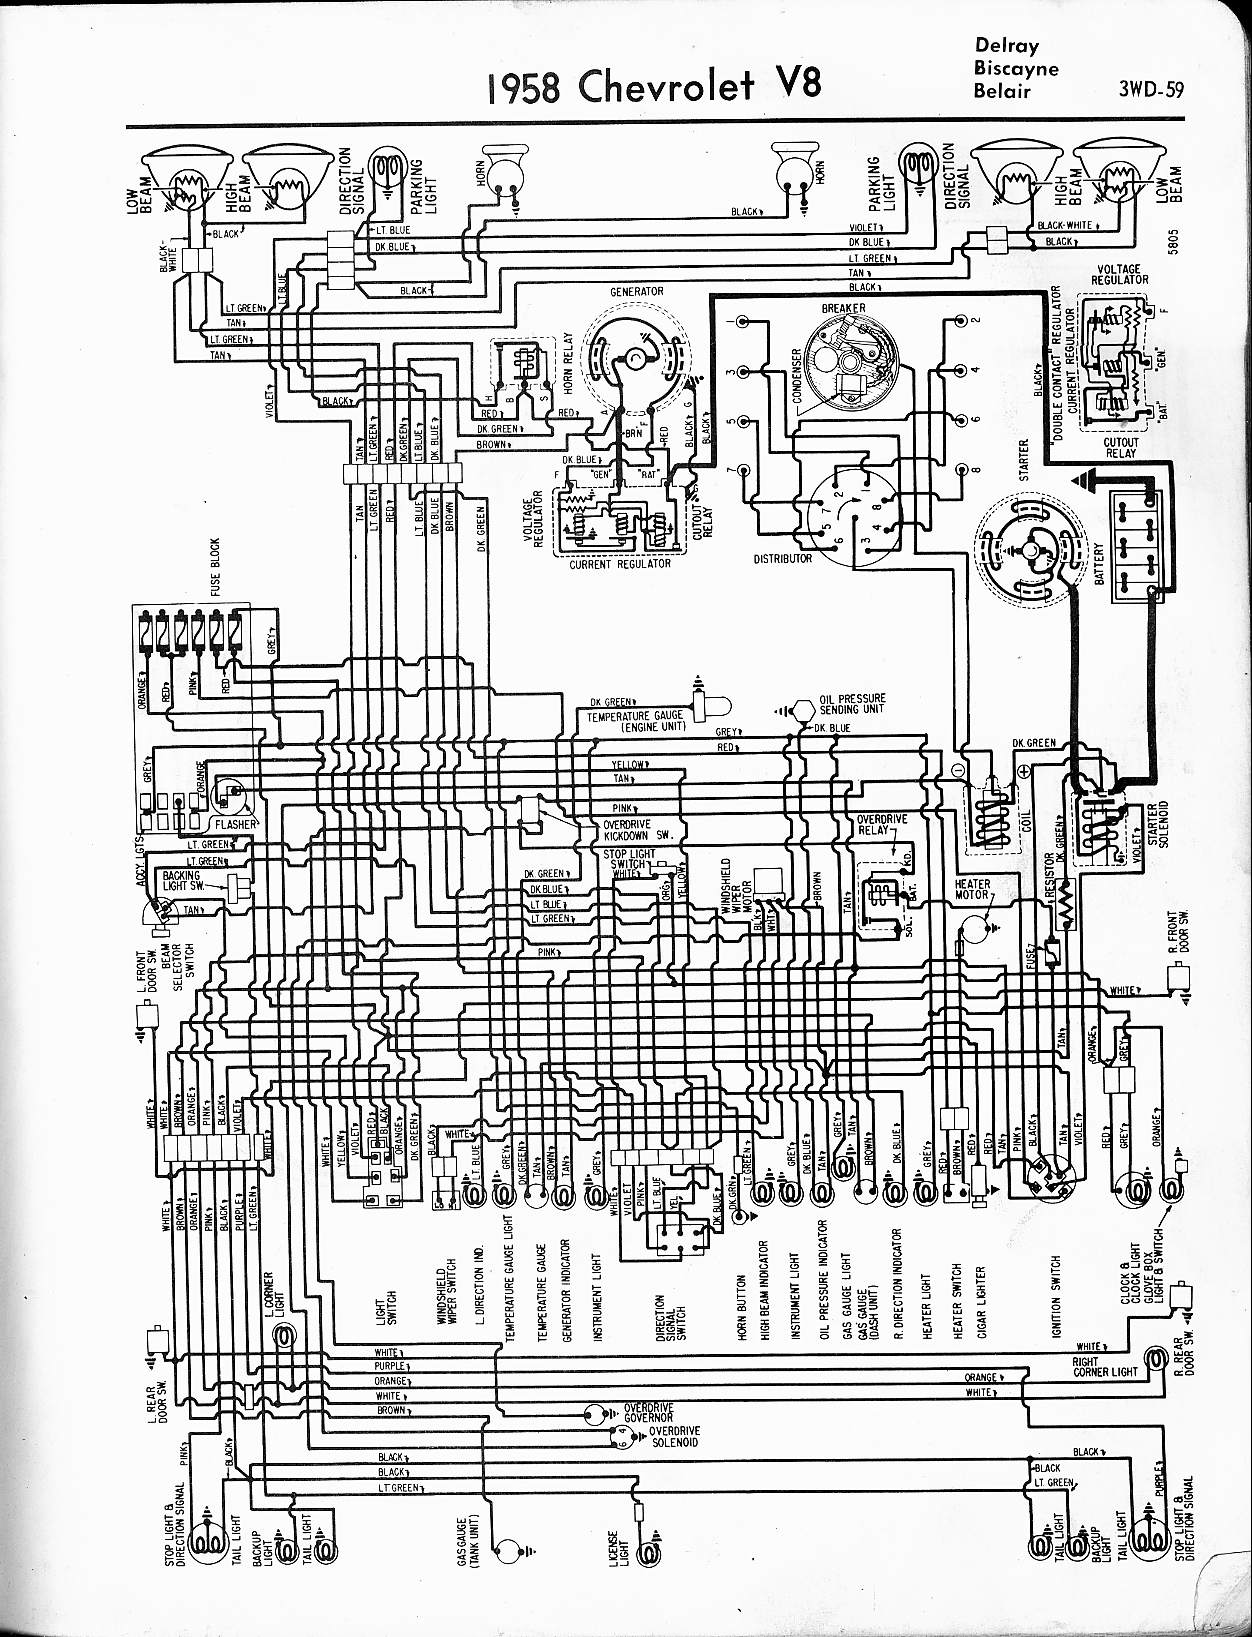 MWireChev58_3WD 059 chevy wiring diagrams chevy radio wiring \u2022 wiring diagrams j 1960 impala wiring diagram at soozxer.org